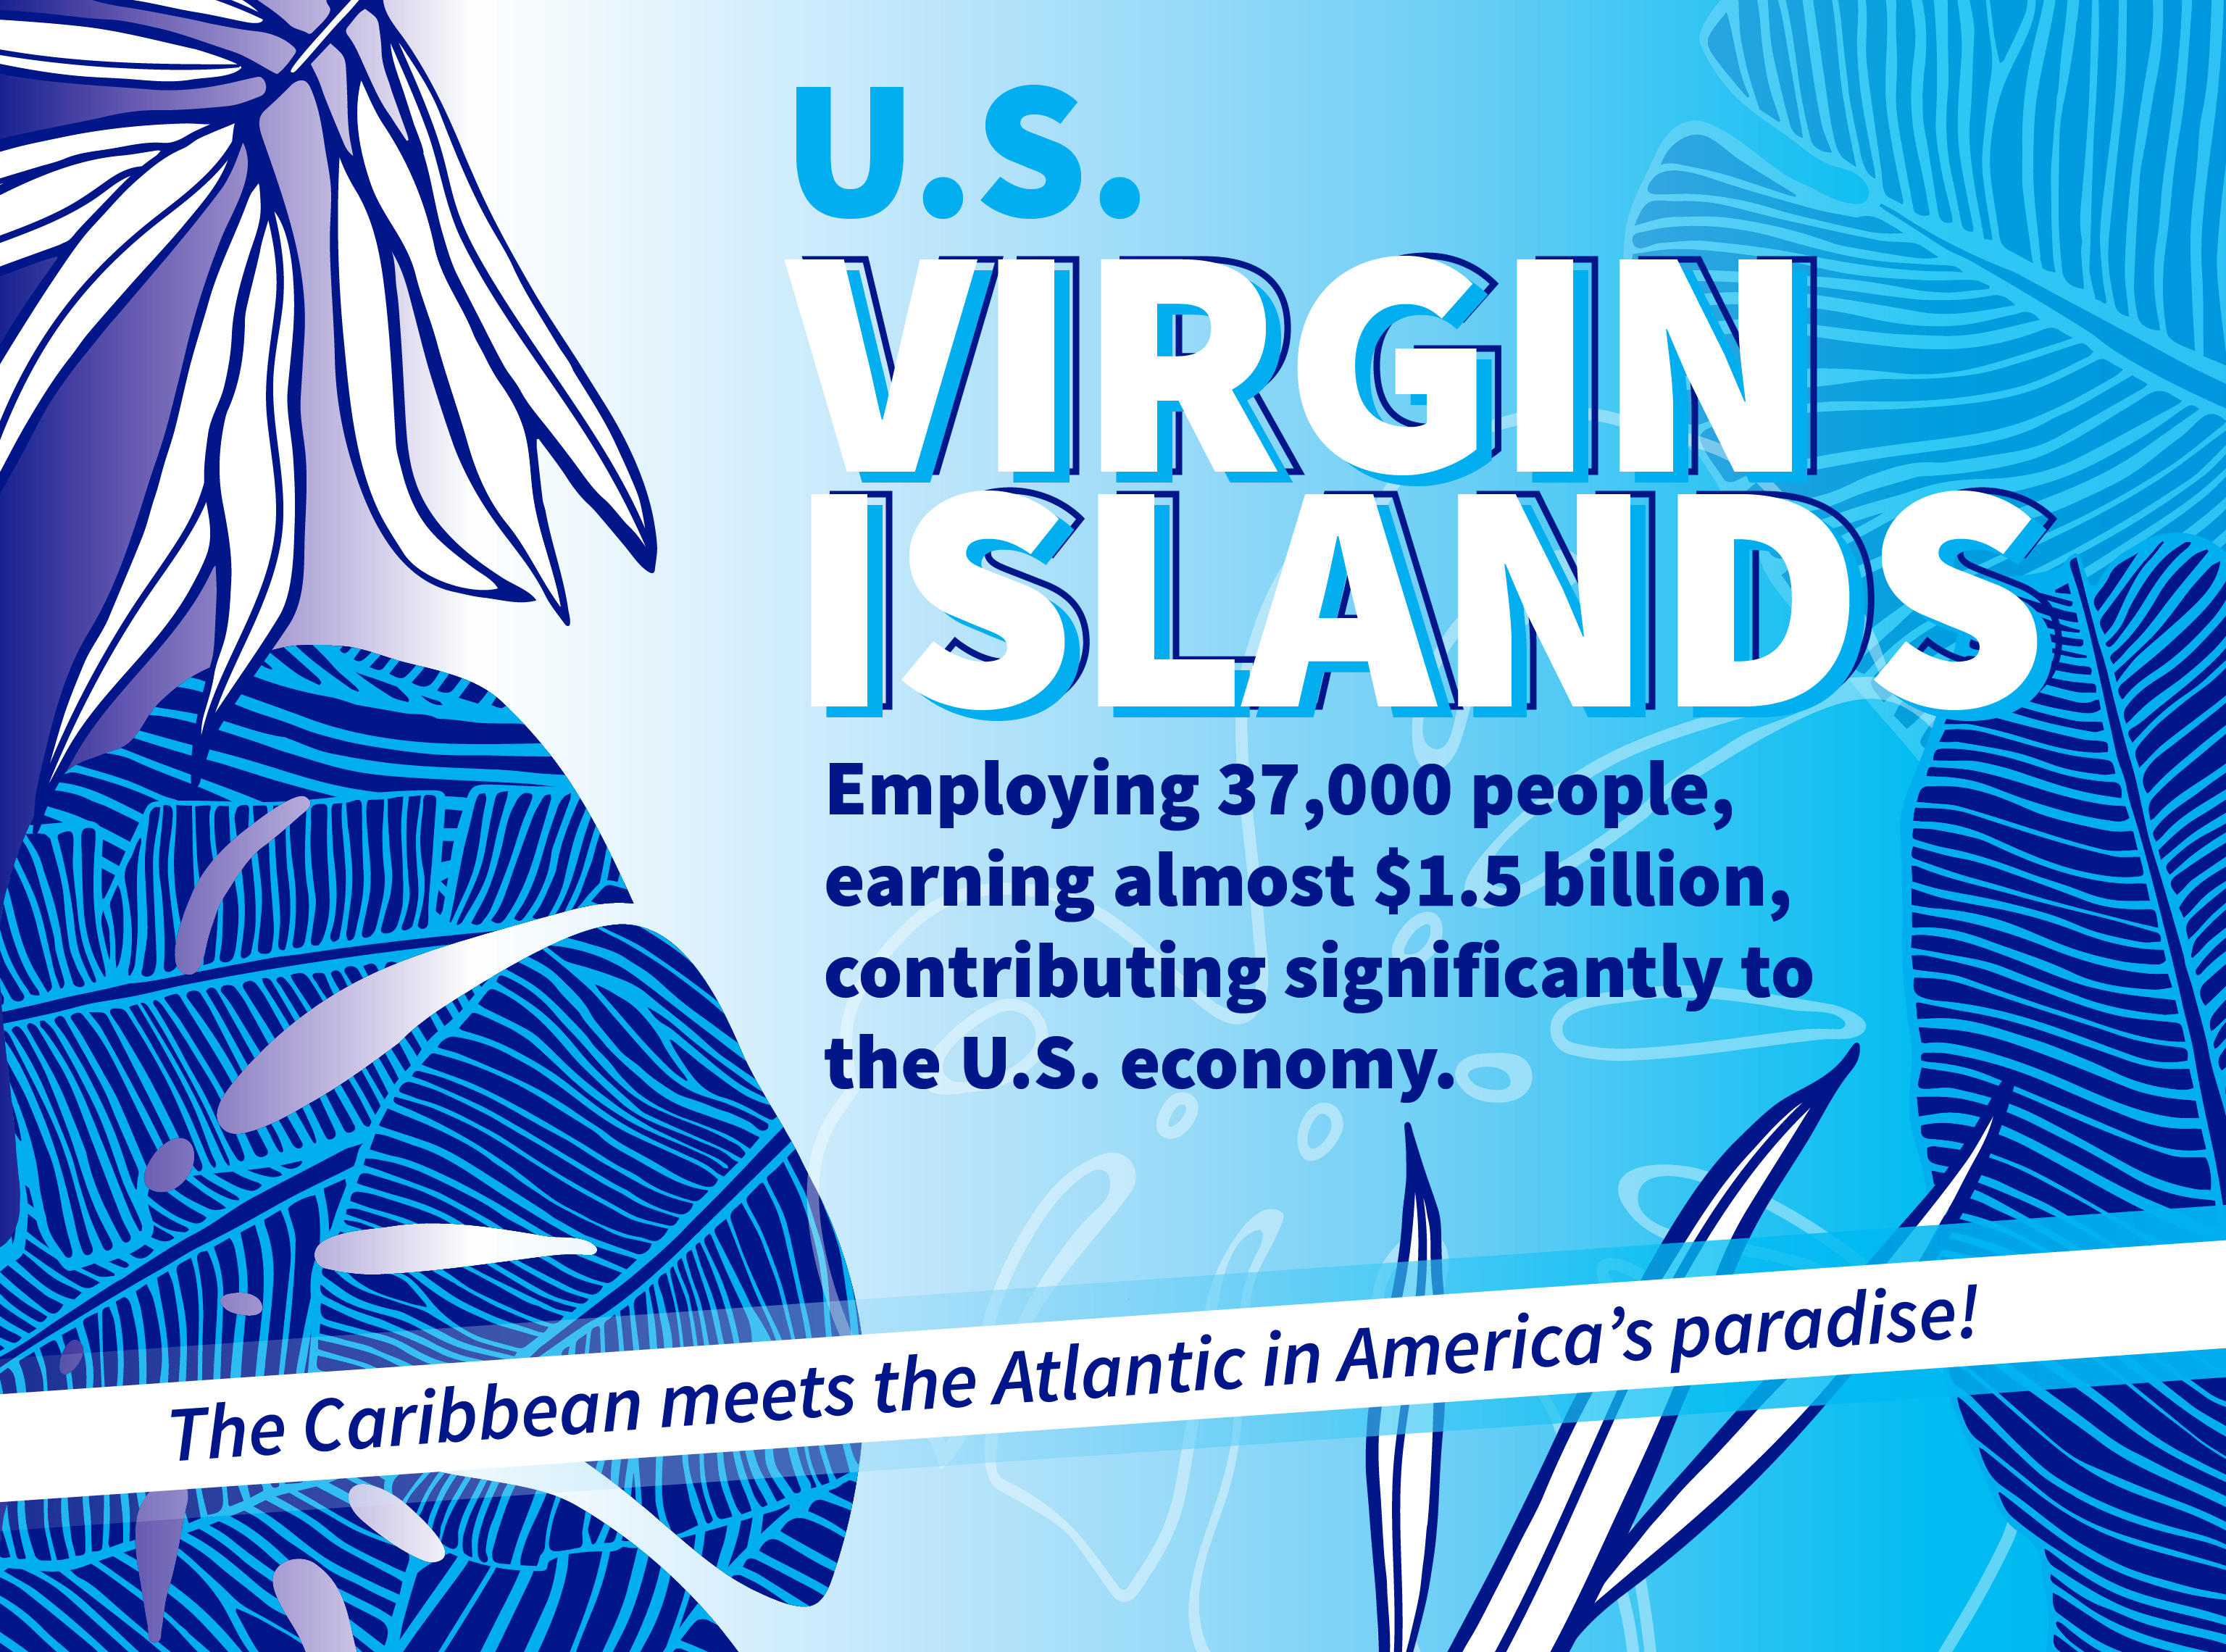 U.S. Virgin Islands graphic